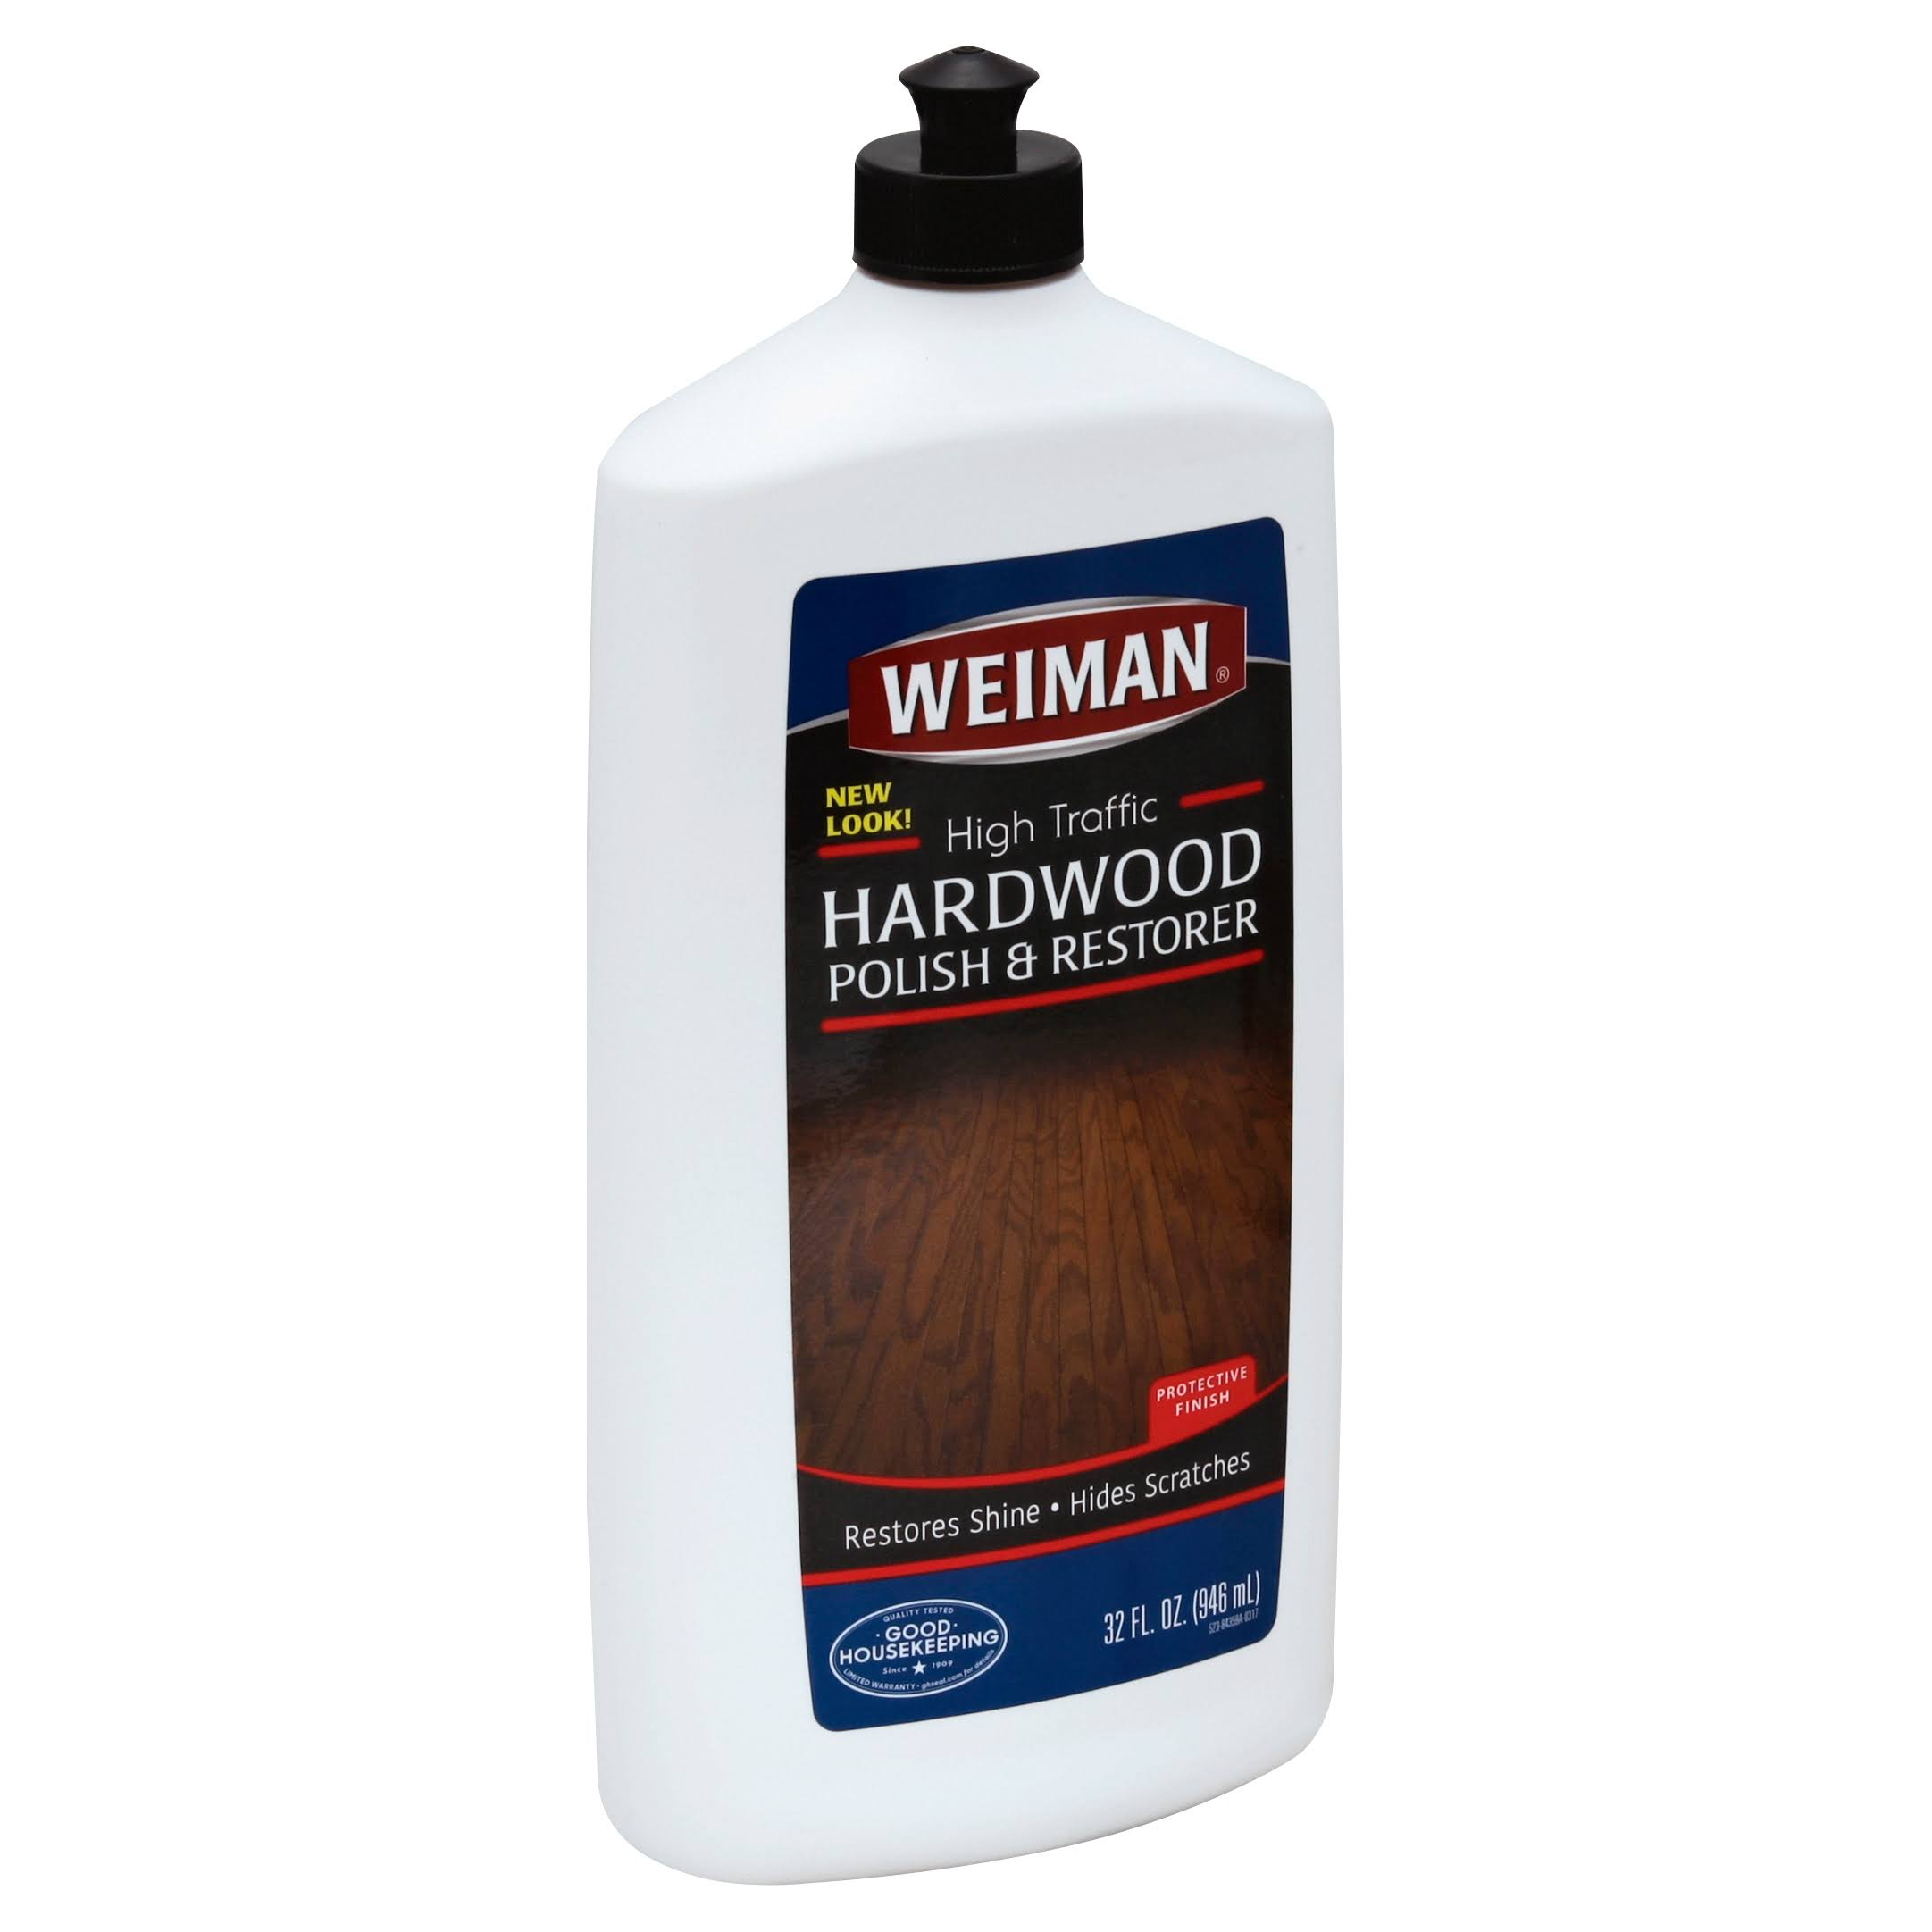 Weiman Wood Floor Polish and Restorer - 32oz